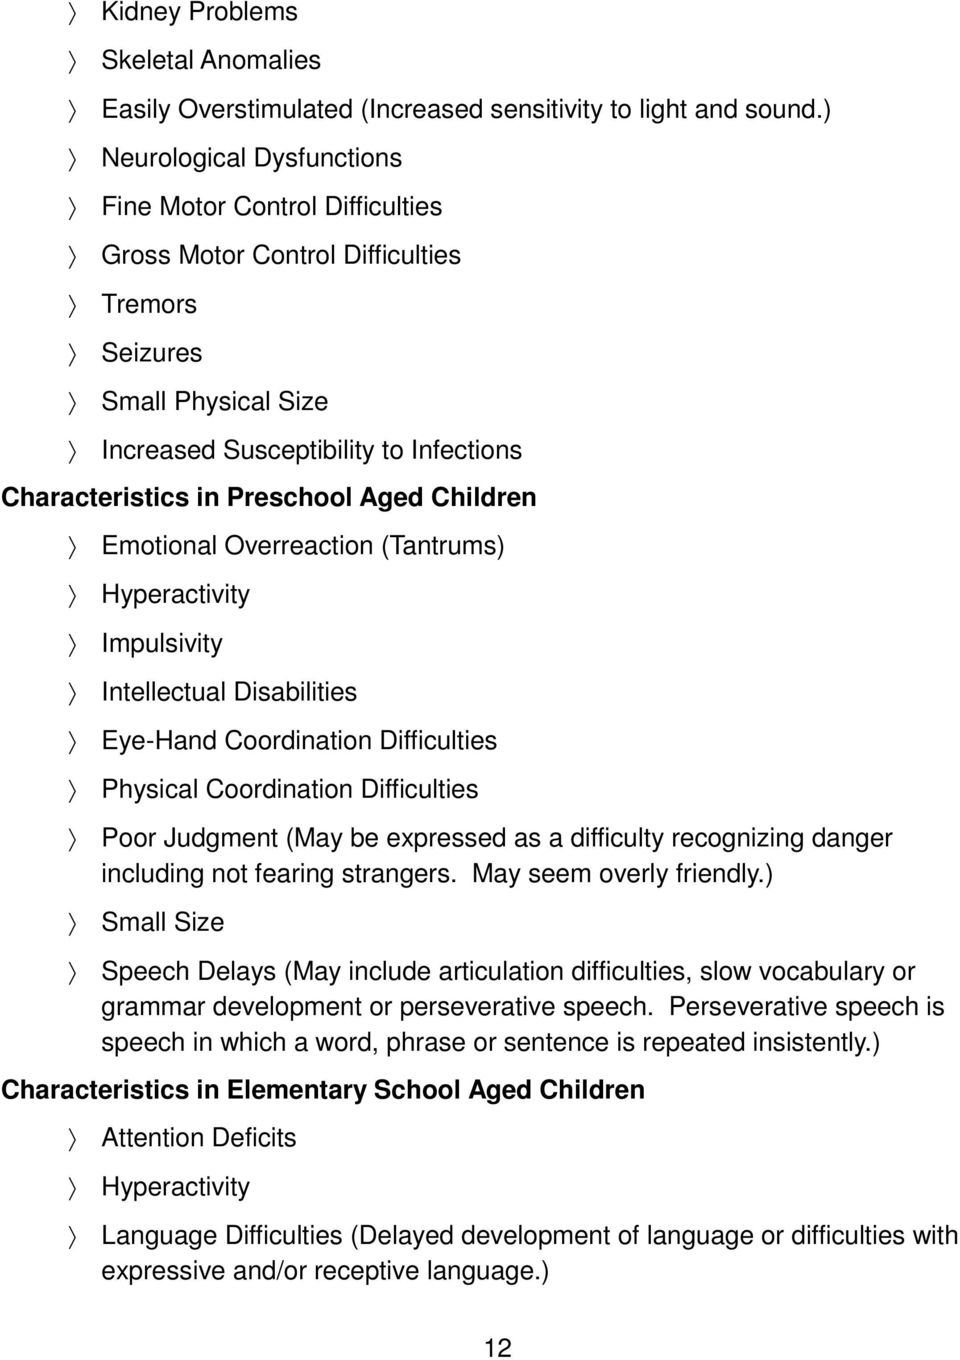 Aged Children Emotional Overreaction (Tantrums) Hyperactivity Impulsivity Intellectual Disabilities Eye-Hand Coordination Difficulties Physical Coordination Difficulties Poor Judgment (May be